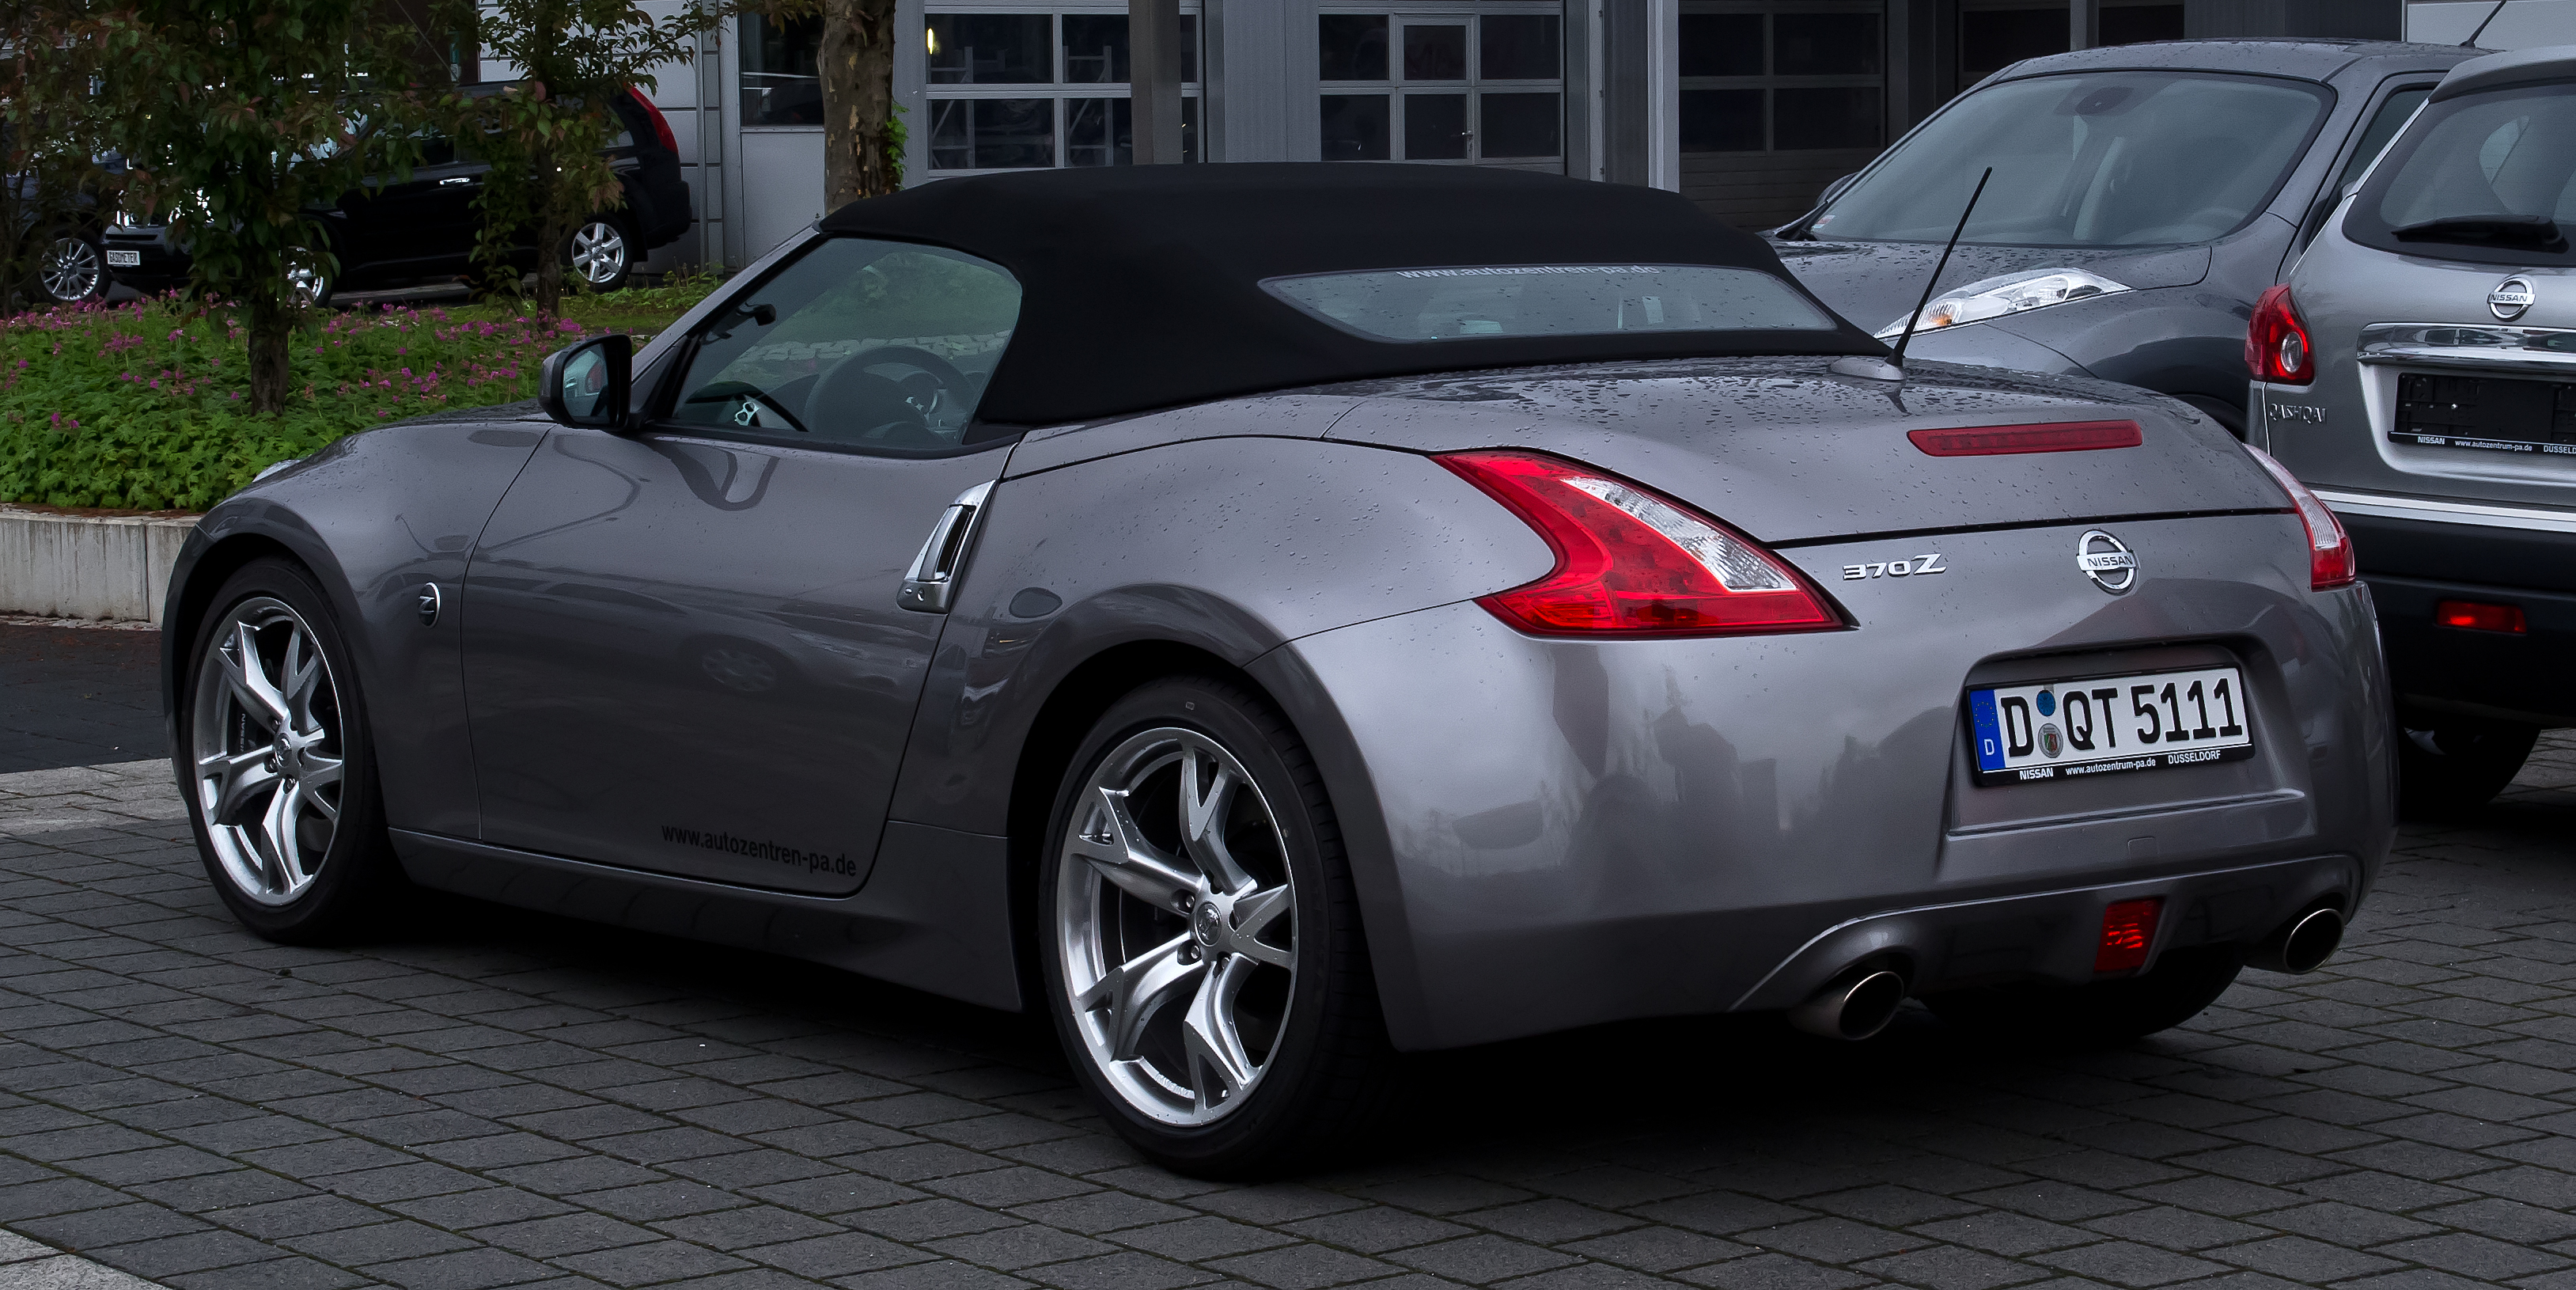 nissan 370z roadster (z34) 2010 pictures